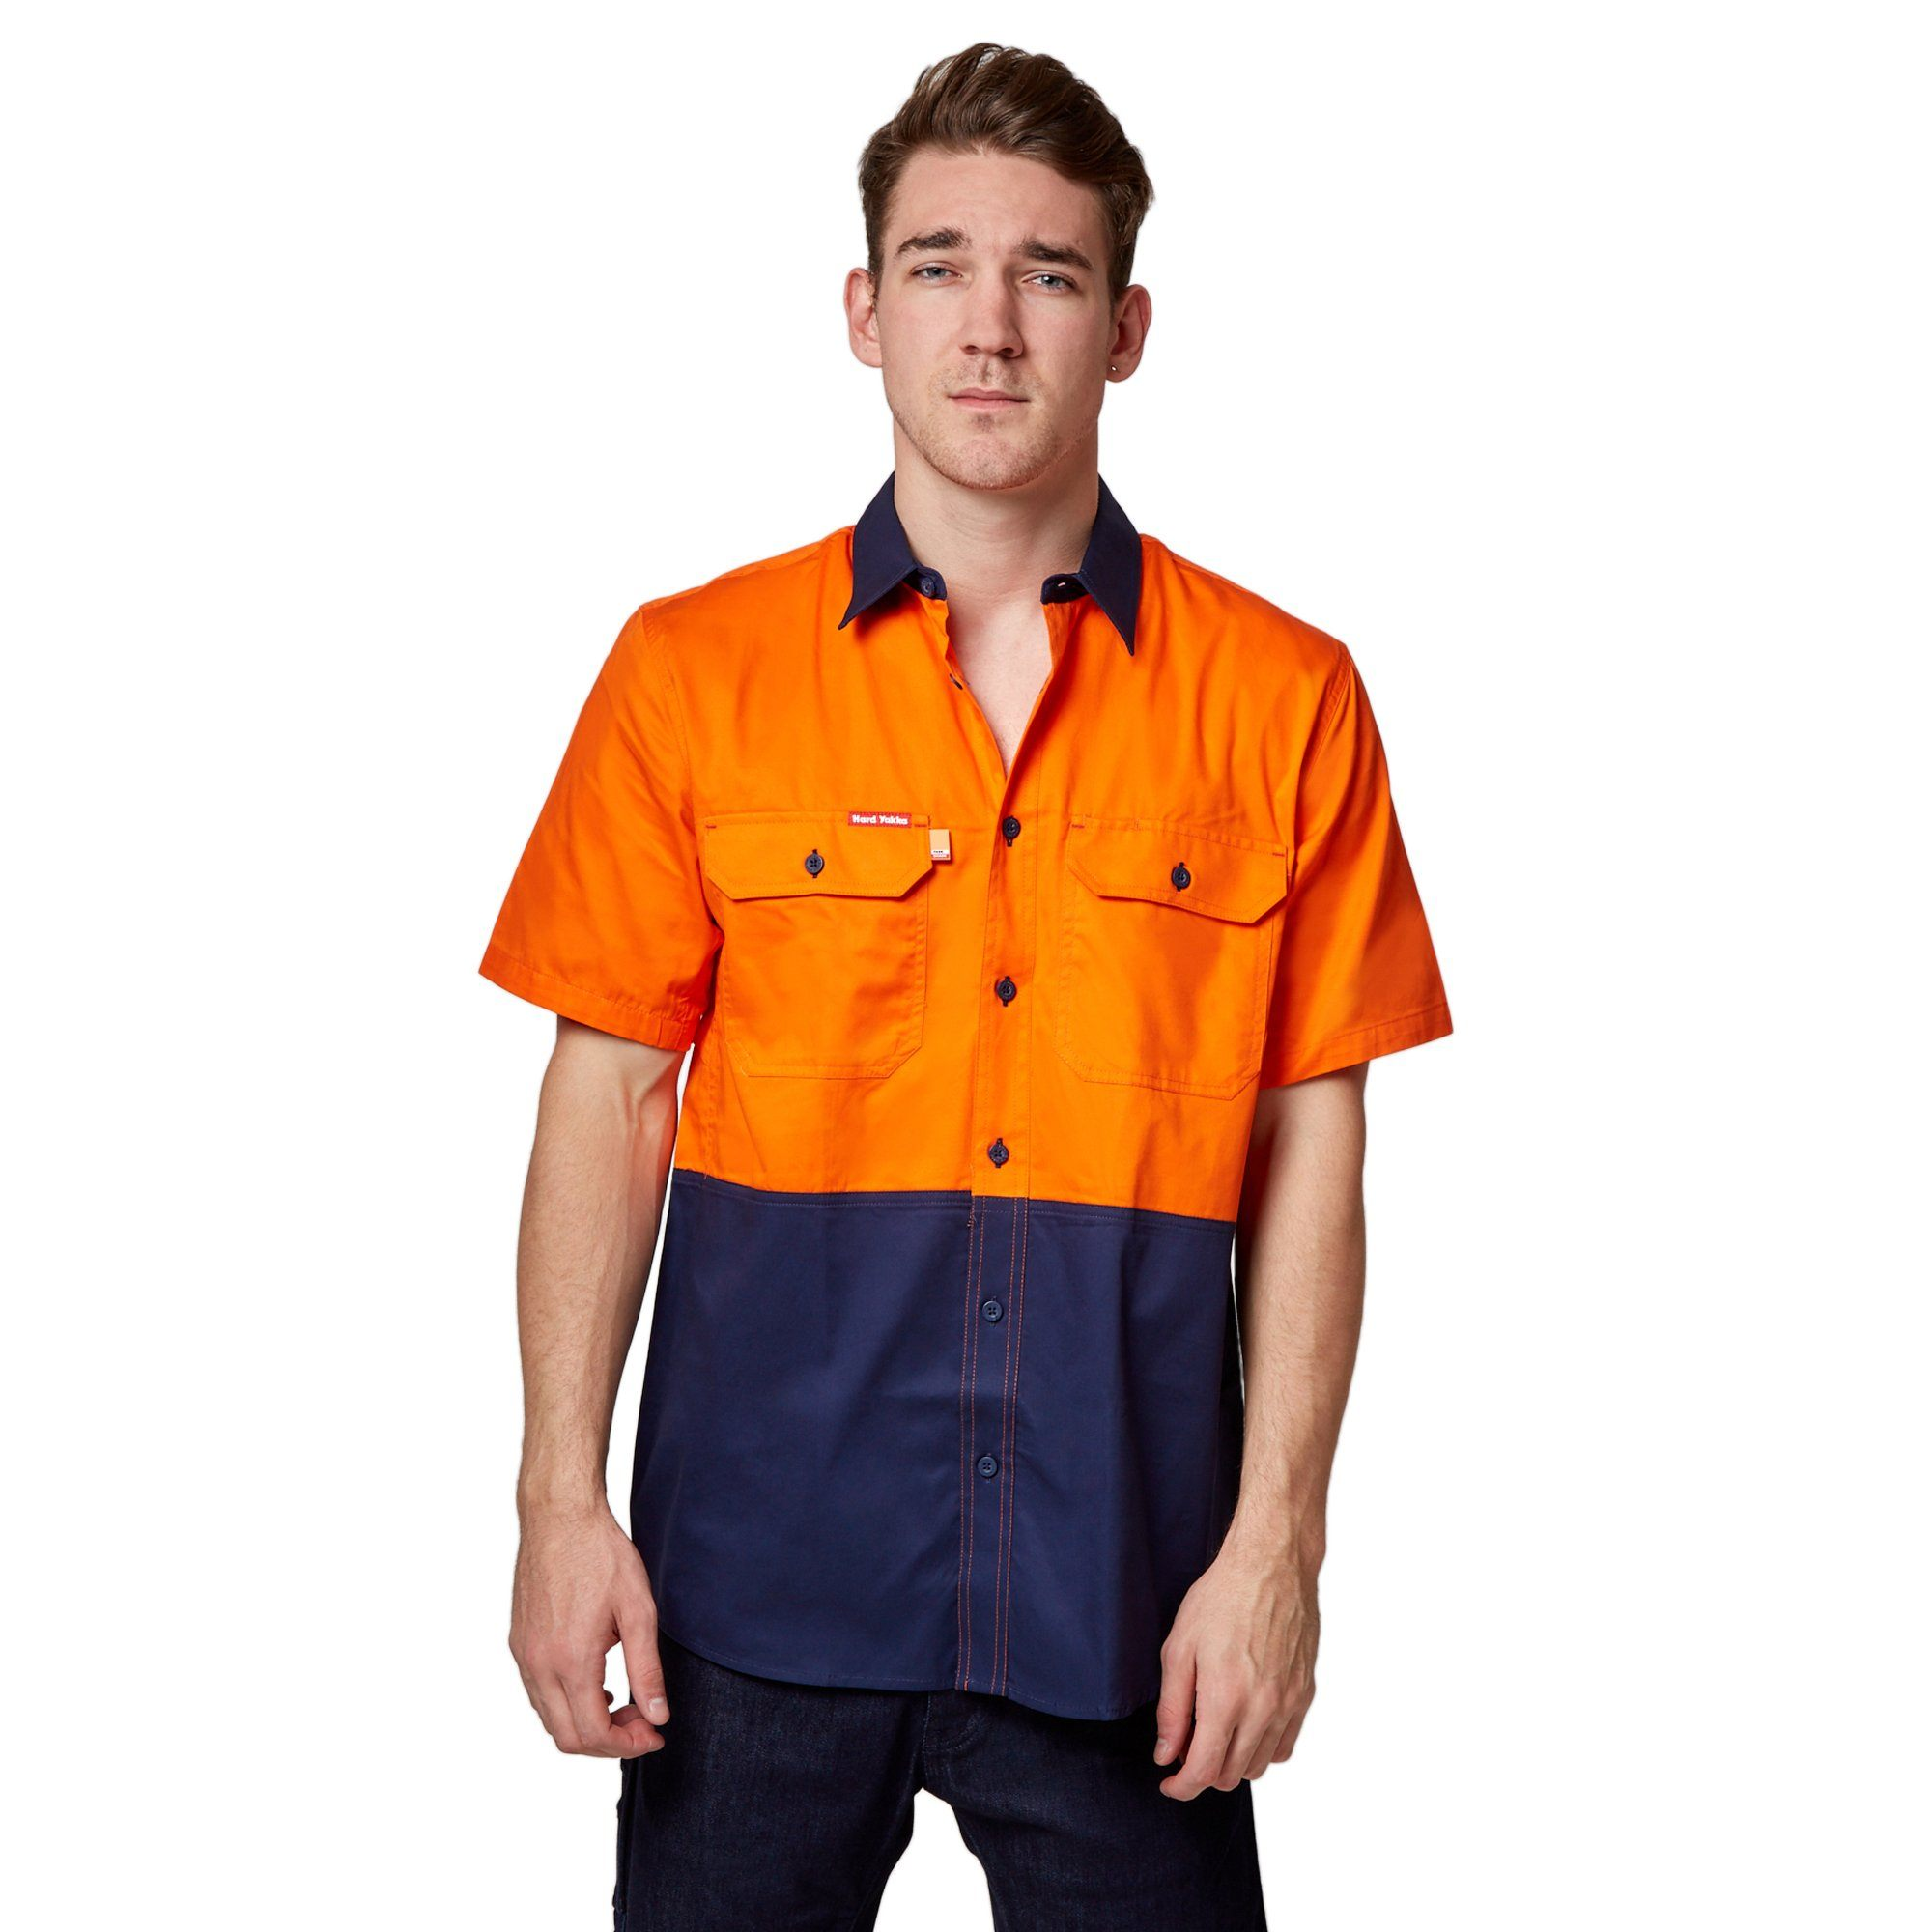 Hard Yakka Koolgear Ventilated Short Sleeve High-Vis Shirt - Orange/Navy Workwear Isbister & Co Wholesale